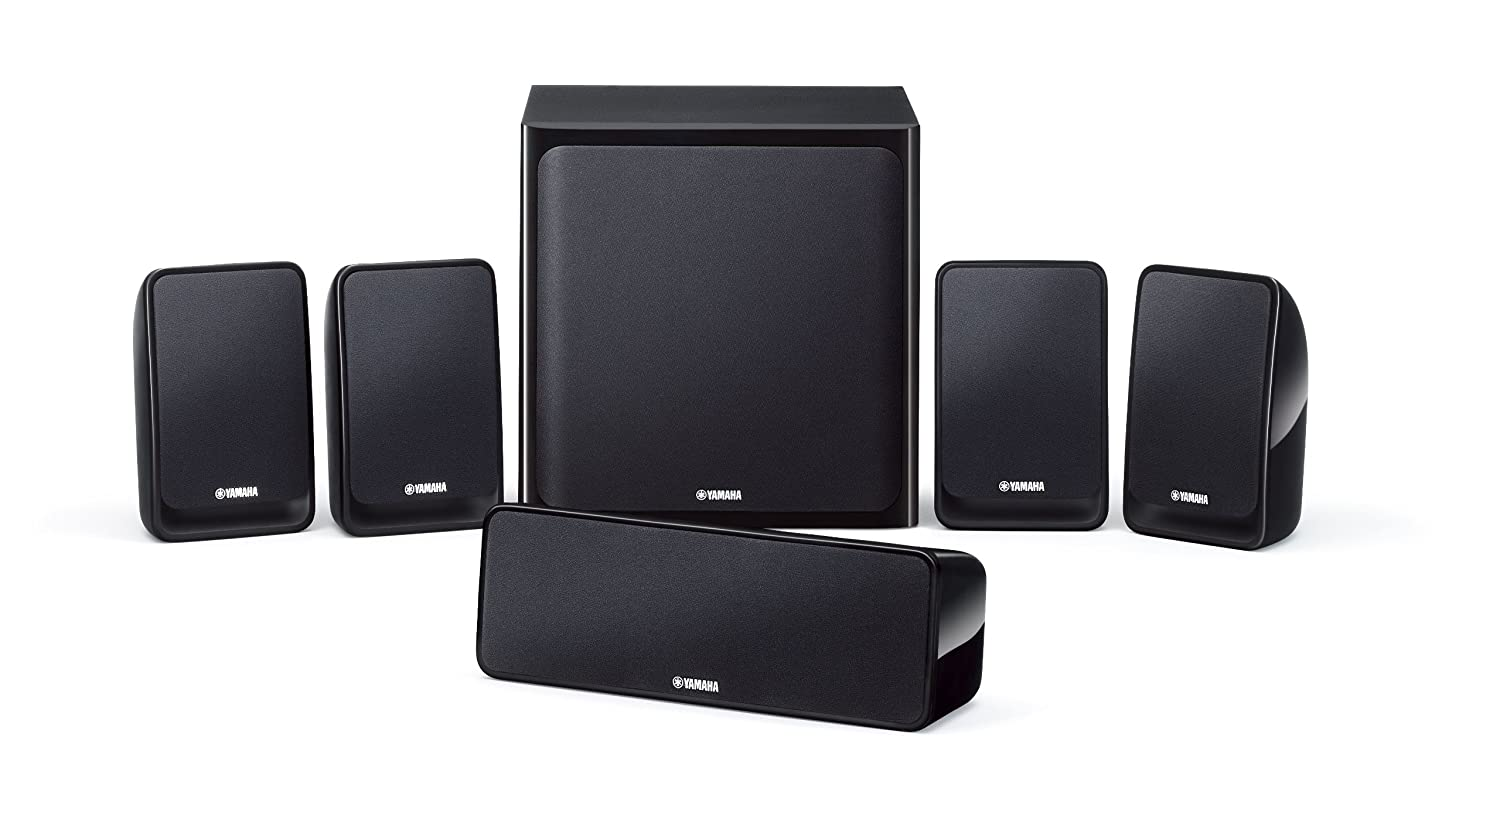 Yamaha NSP-20 - Equipo de altavoces (400W, 5.1), negro